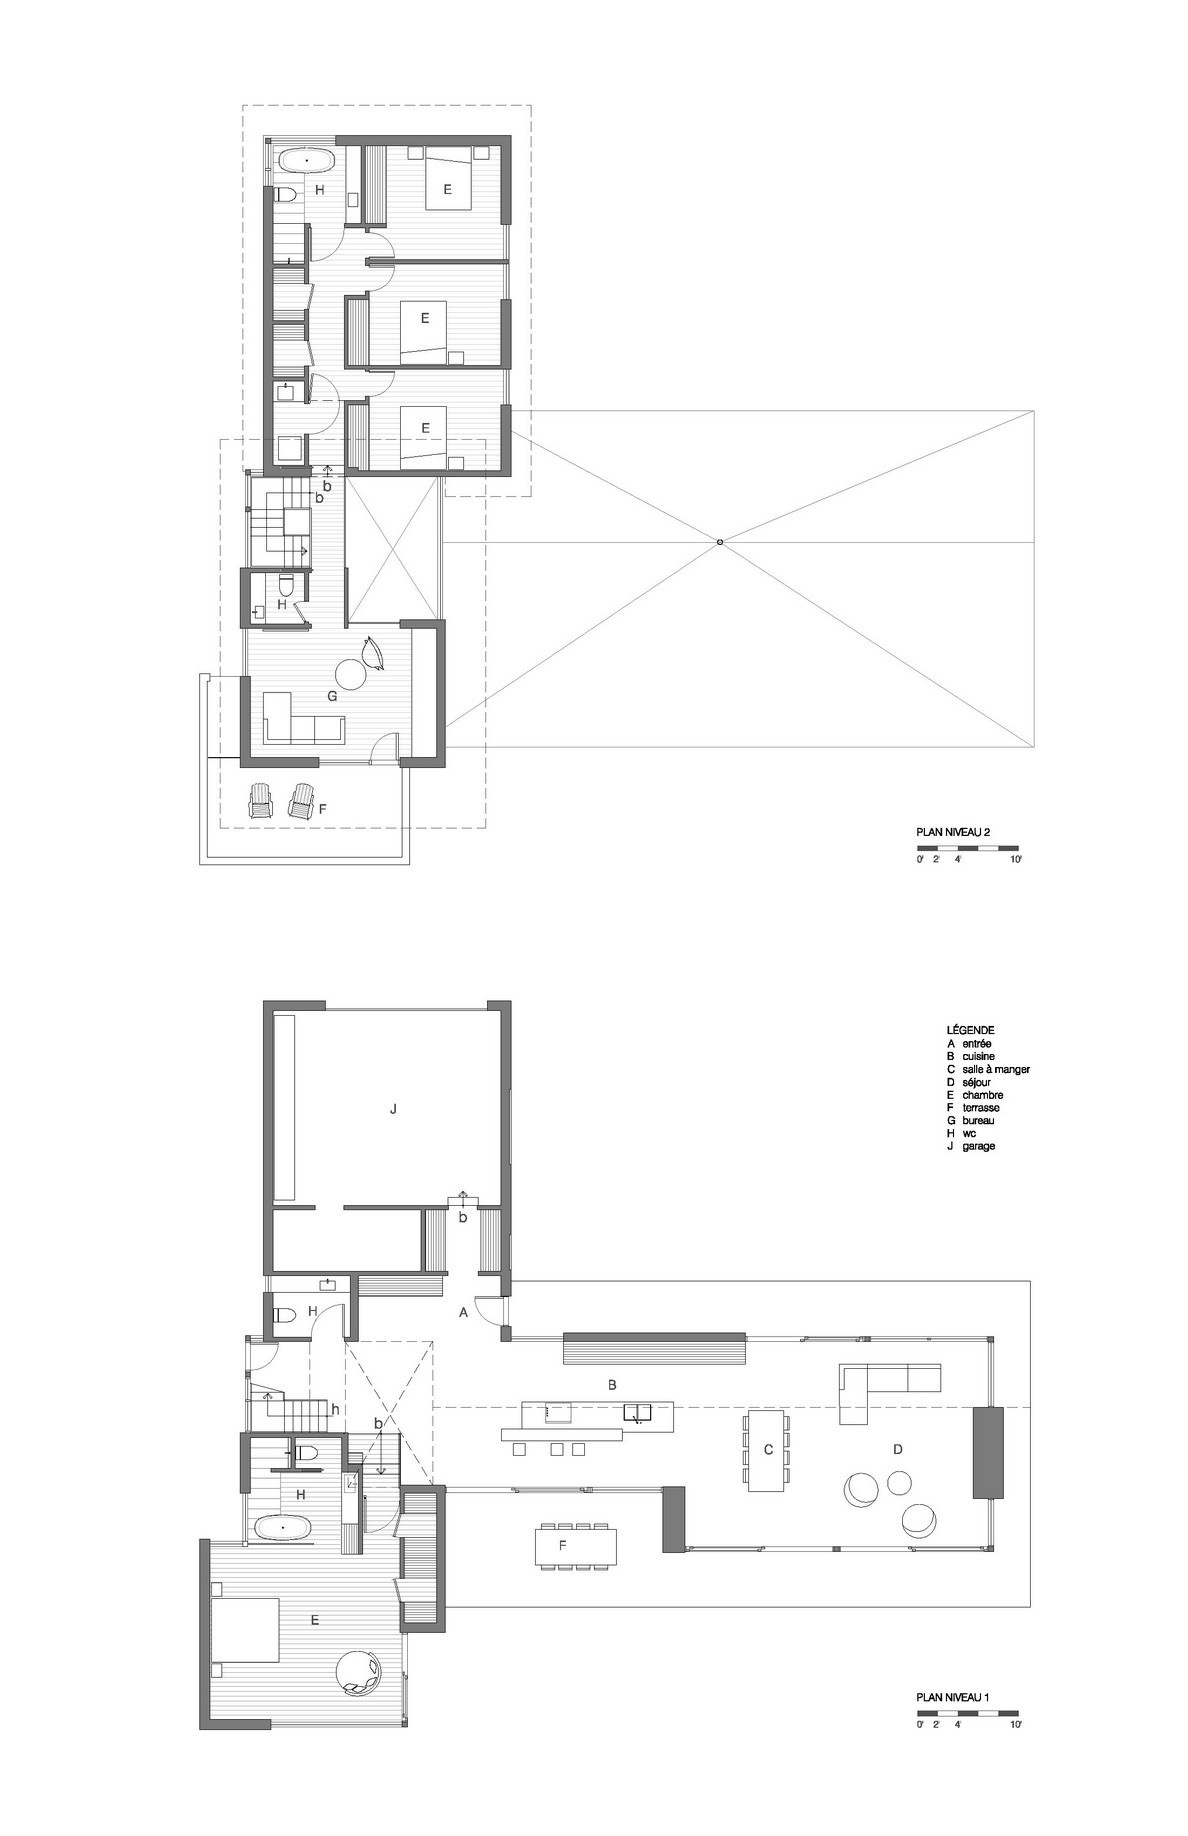 Загородный дом на берегу озера в Канаде от студии YH2 Yiacouvakis Hamelin, HQ architecture, HQarch, HQ arch, high quality architecture